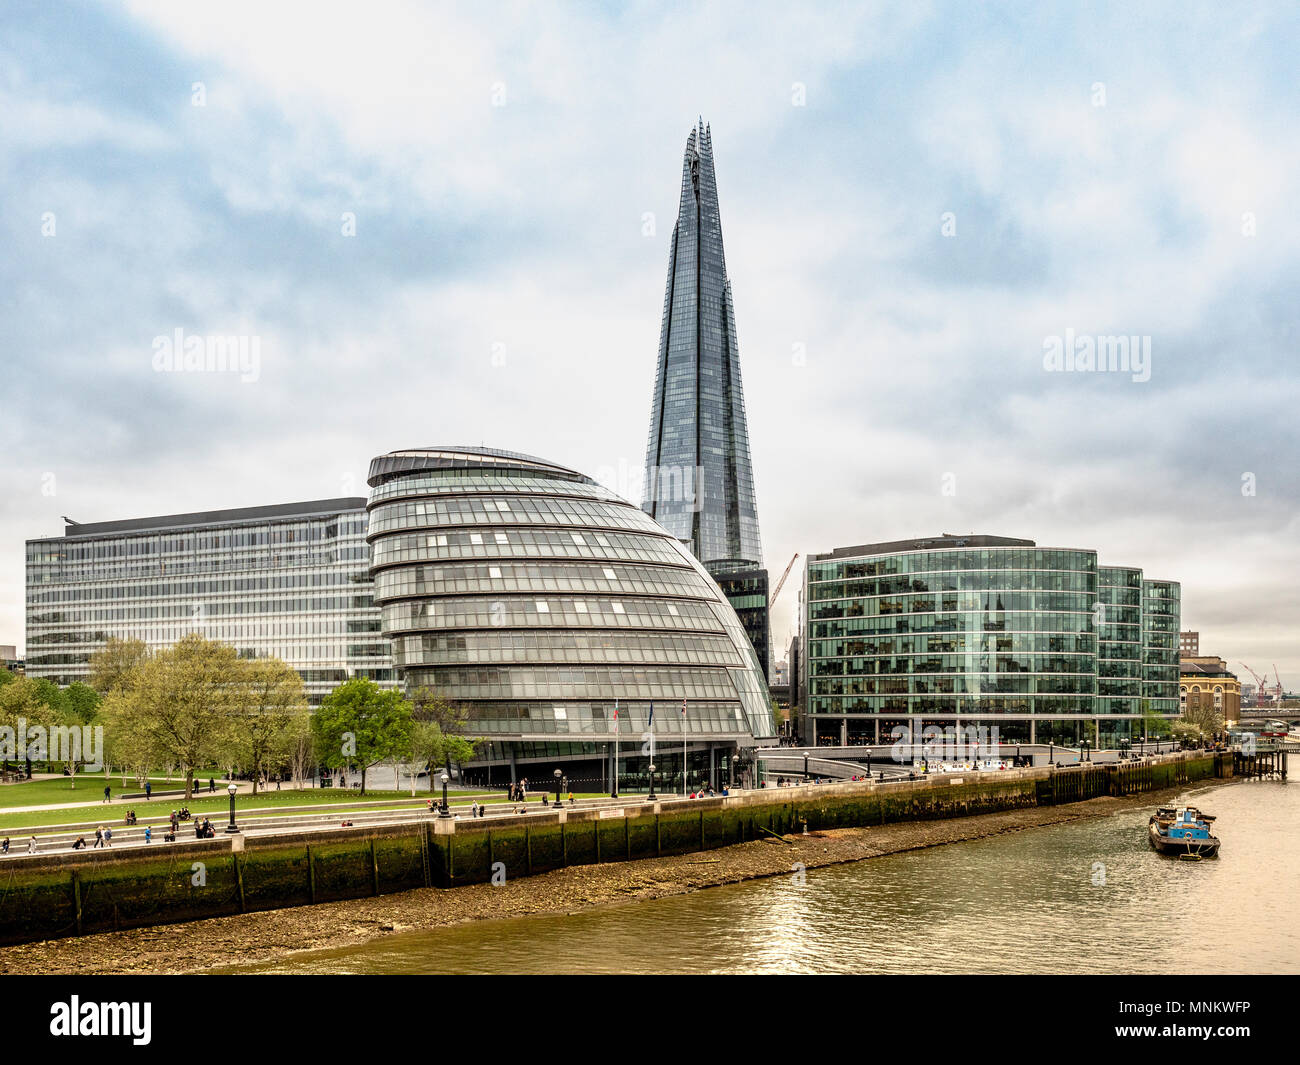 City Hall, headquarters of the Greater London Authority, and the Shard. Southwark, on the south bank of the River Thames., London, UK. - Stock Image